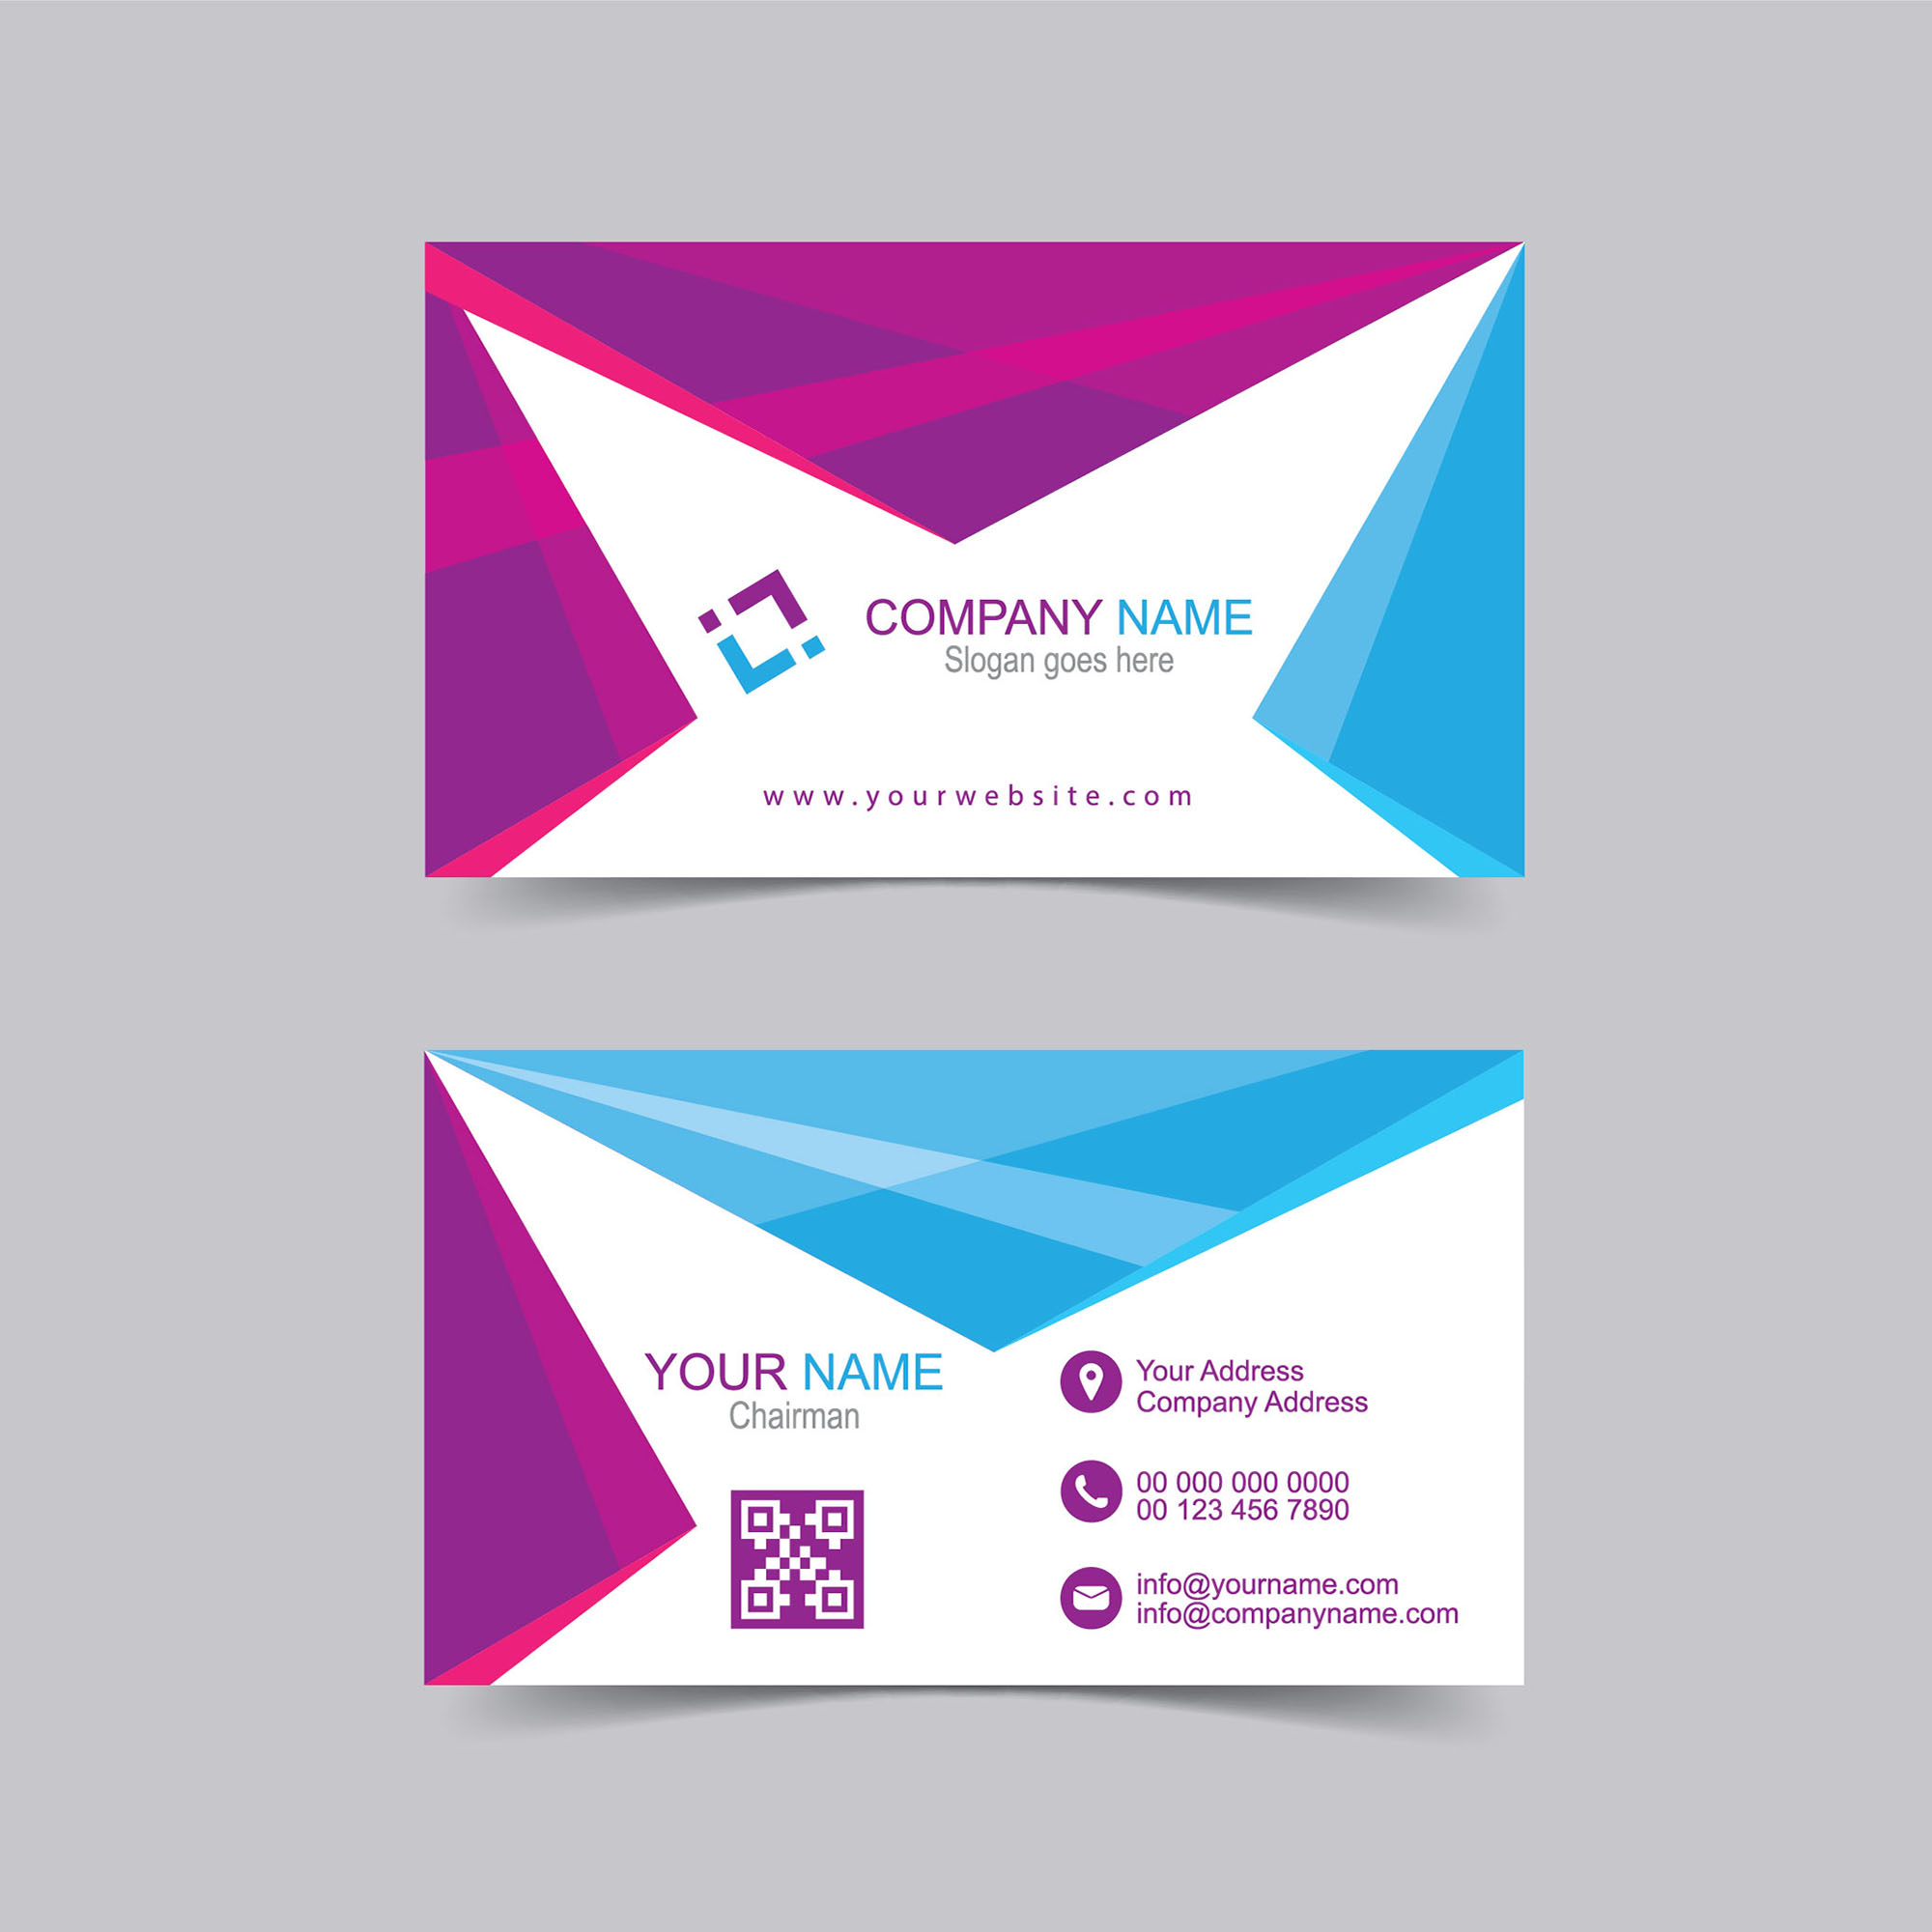 Visiting card vector template free download wisxi business card business cards business card design business card template design templates reheart